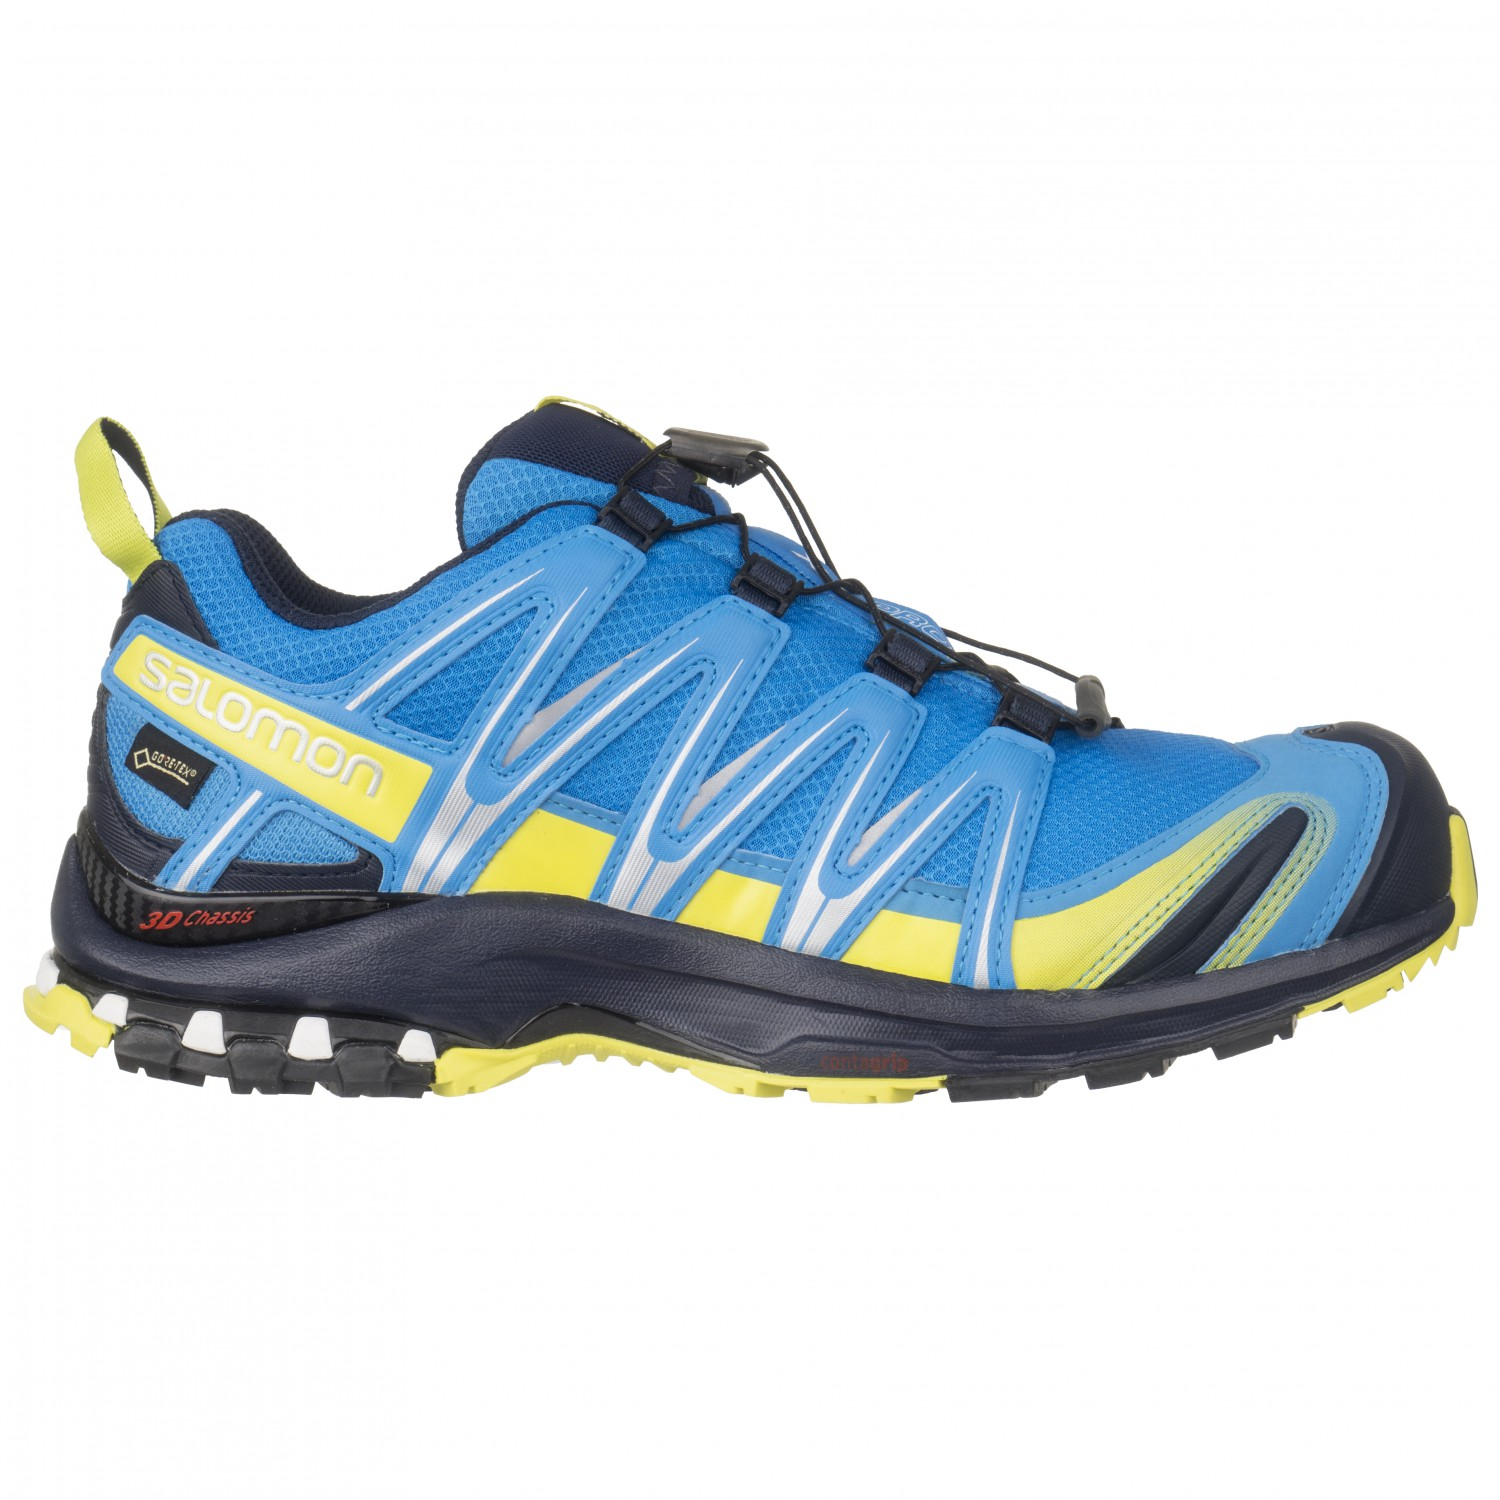 Salomon XA Pro 3D GTX Multisport shoes Men's | Free EU